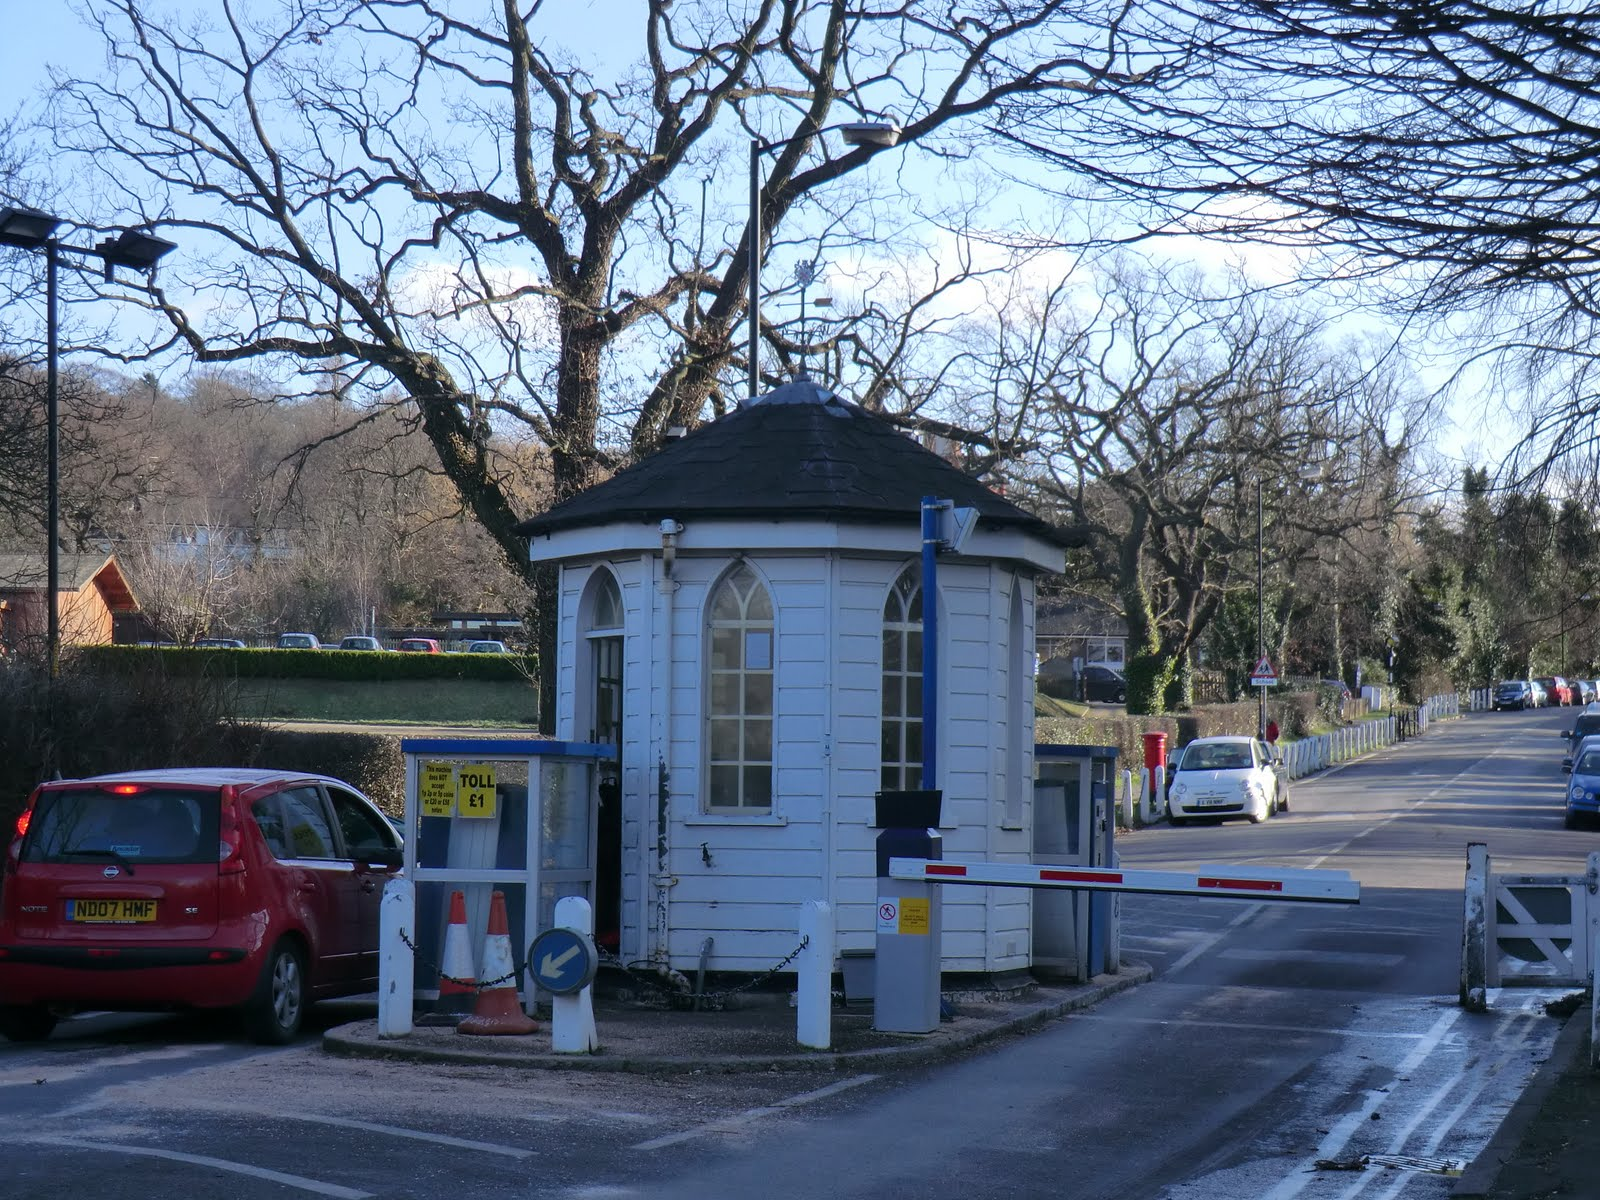 CIMG1601 Toll Booth, College Road